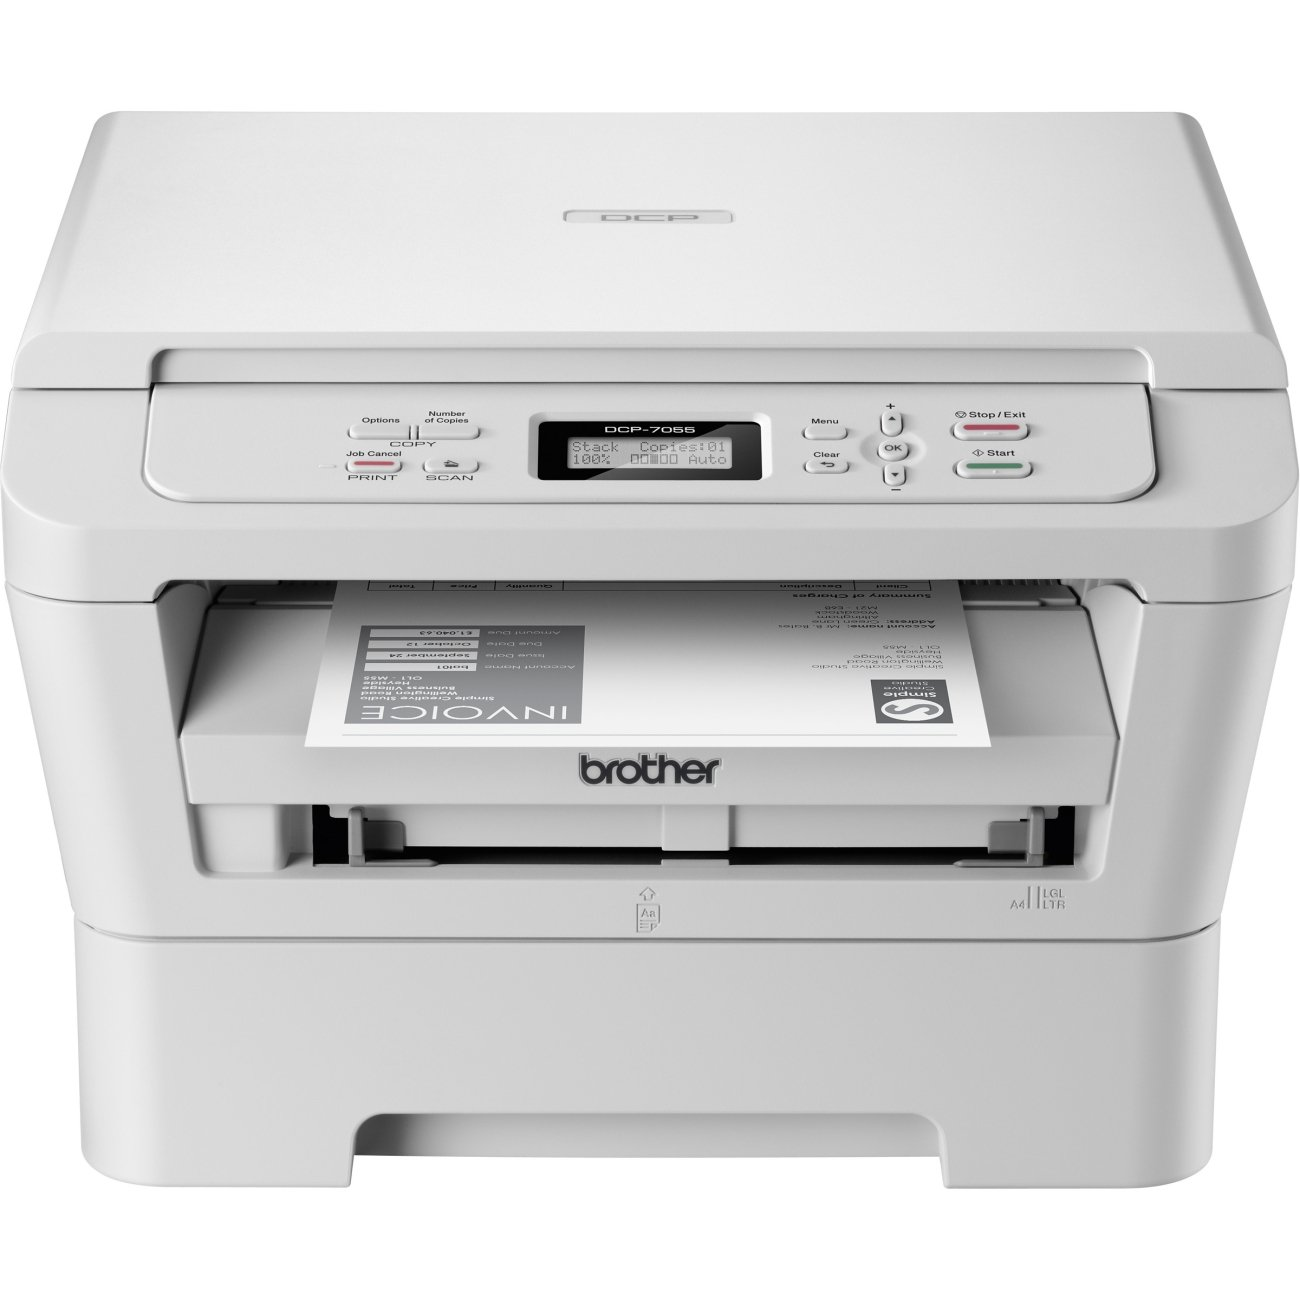 Brother DCP-7055 Driver Downloads | Download Drivers Printer